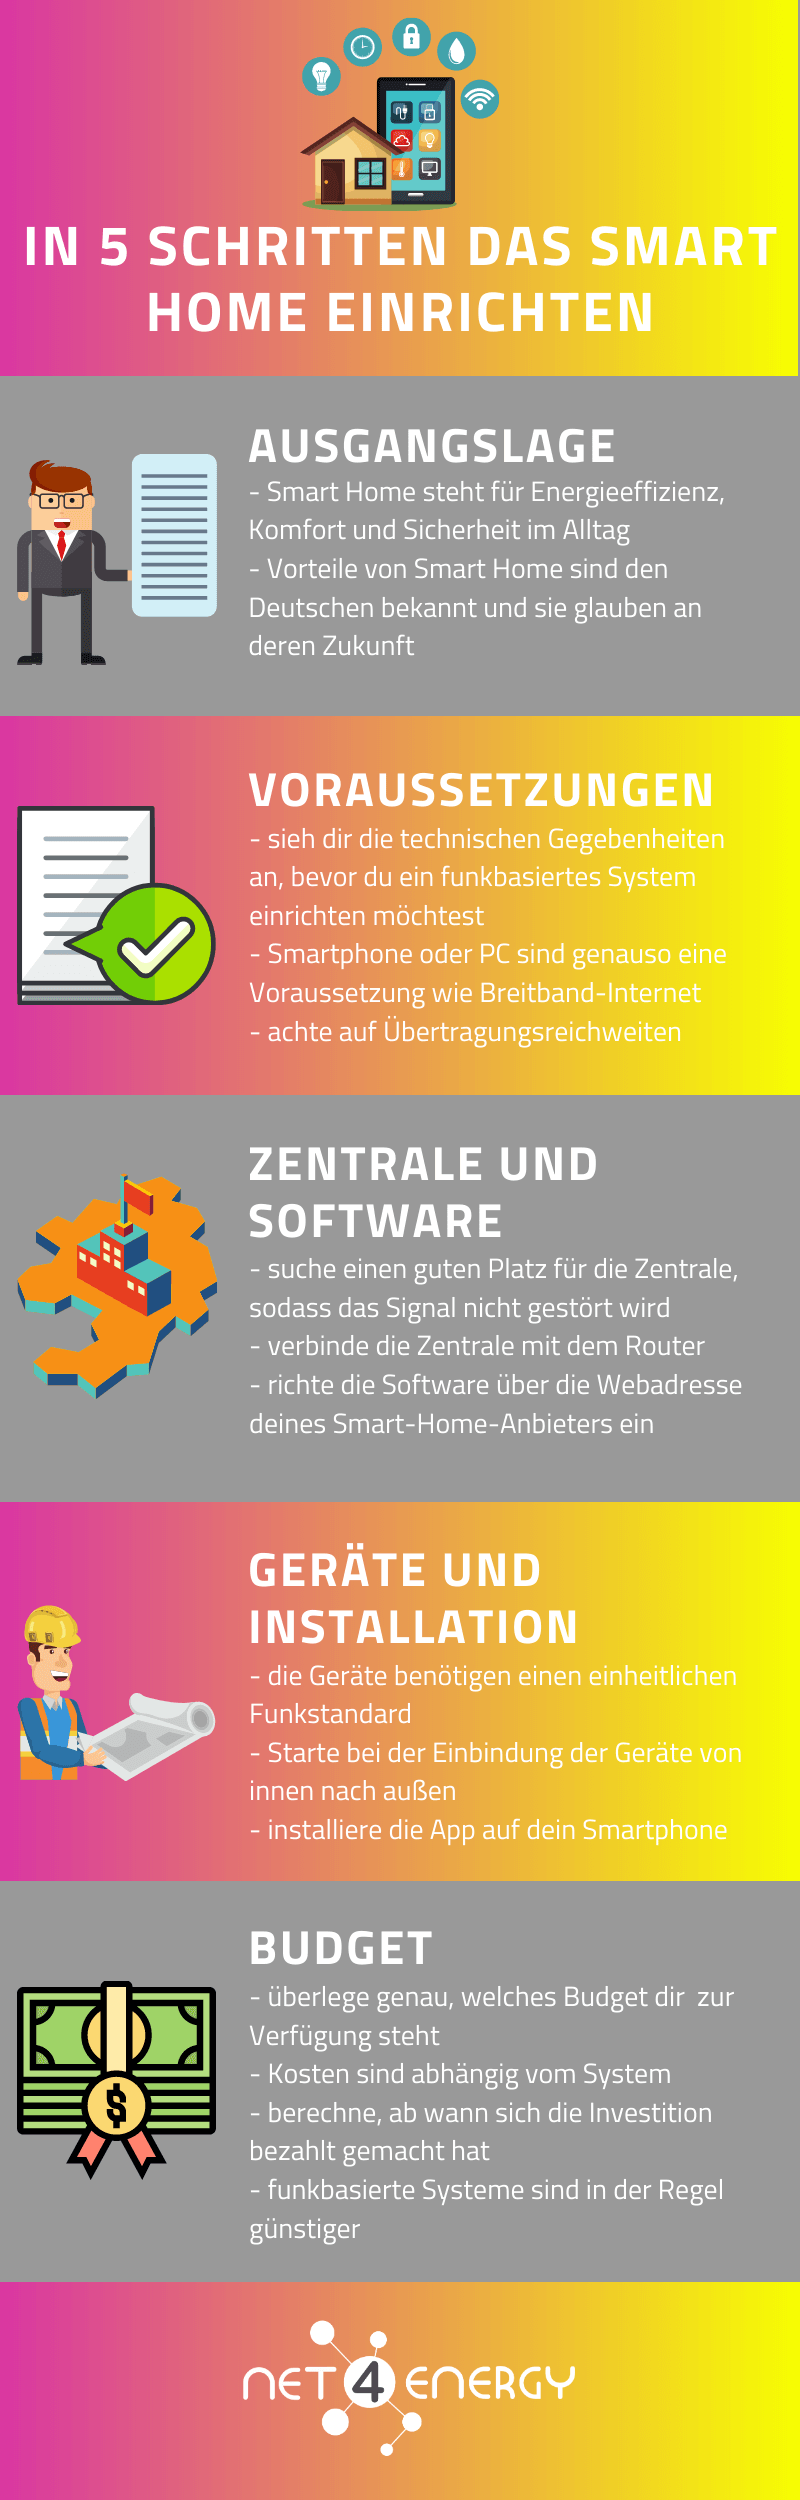 smart-home-einrichten-infografik-net4energy